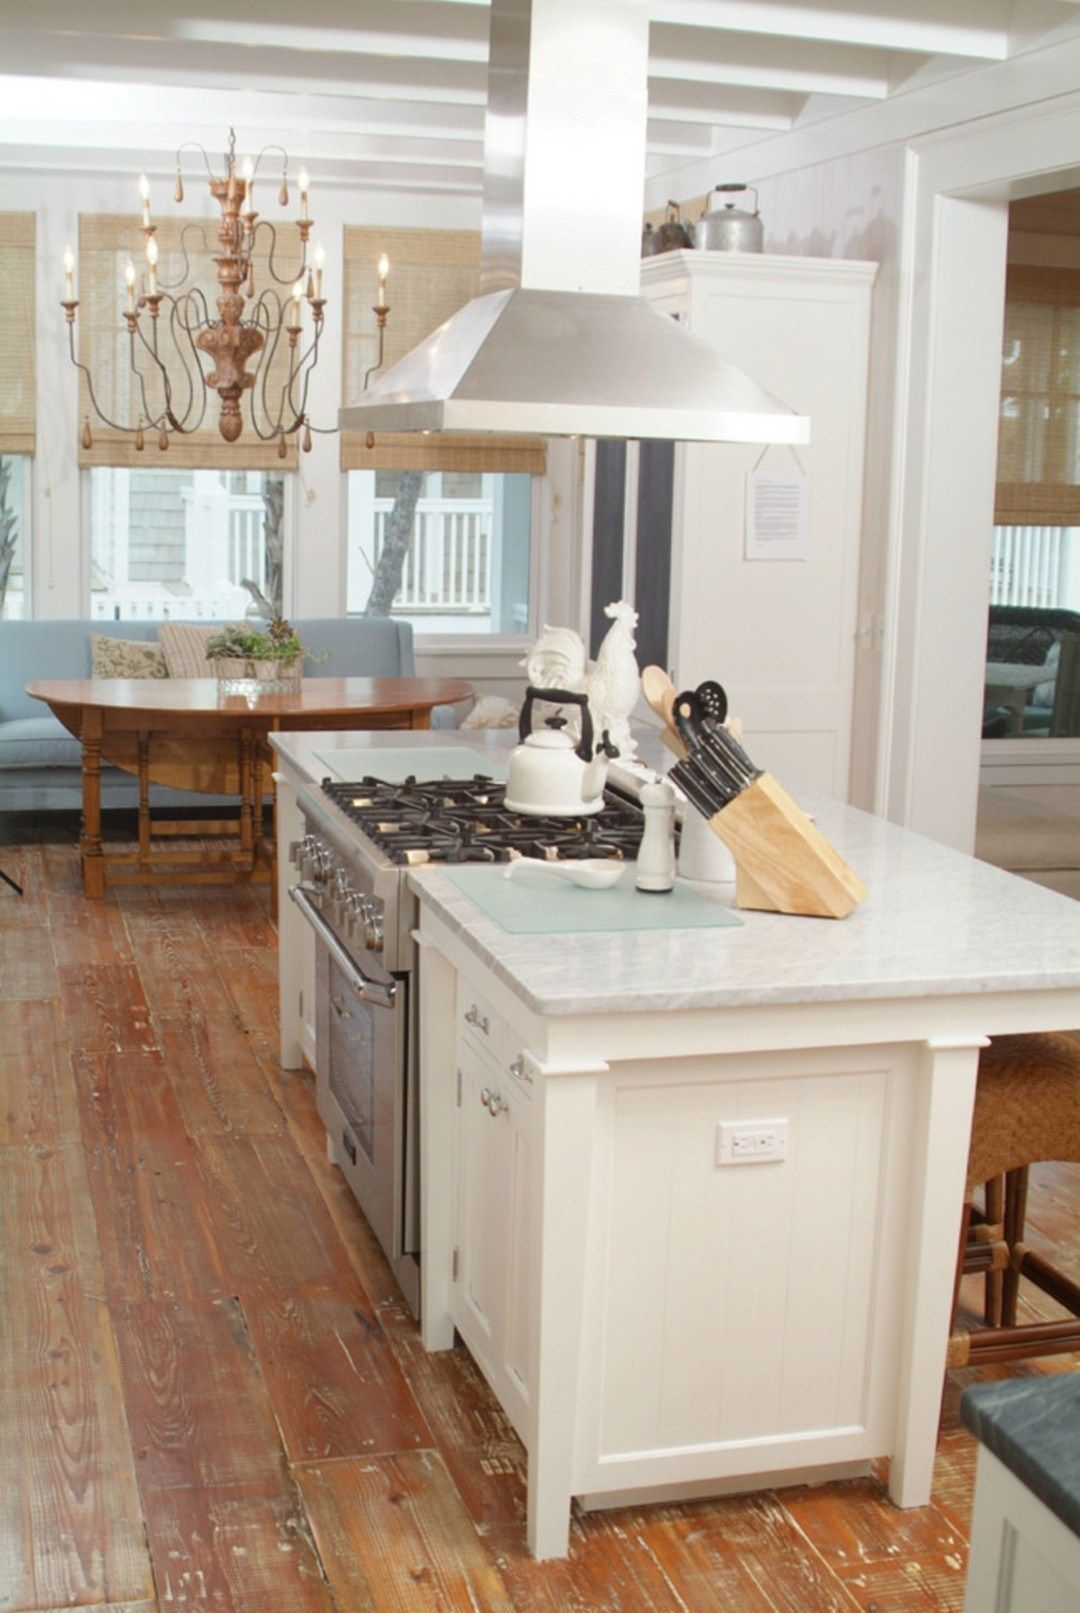 Creative Kitchen Islands With Stove Top Makeover Ideas 9 Onechitecture Creative Ideas Is In 2020 Kitchen Island Design Kitchen Layout Kitchen Island With Cooktop